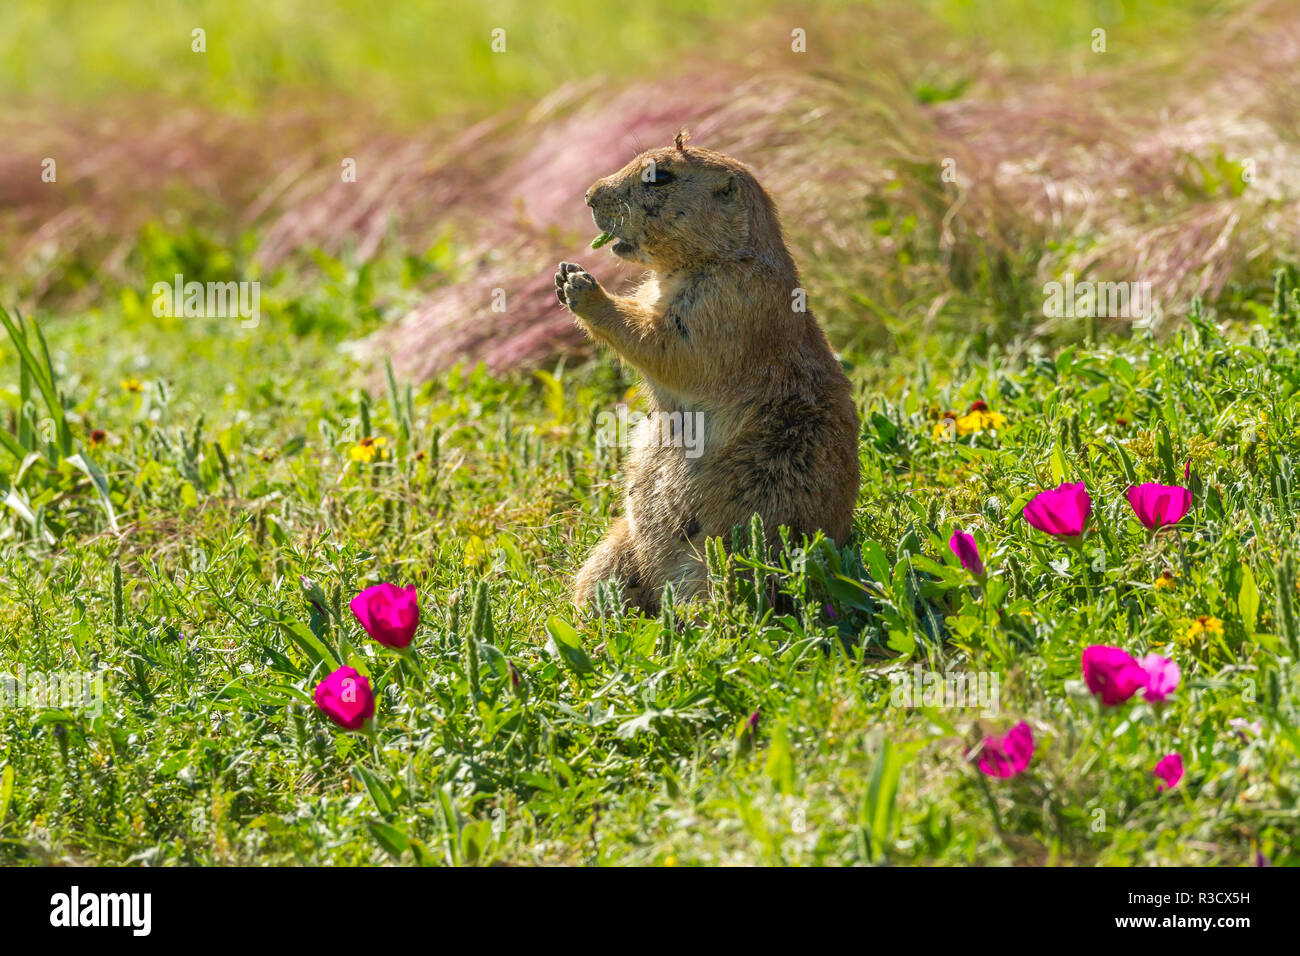 USA, Oklahoma, Wichita Mountains National Wildlife Refuge. Prairie dog eating. - Stock Image